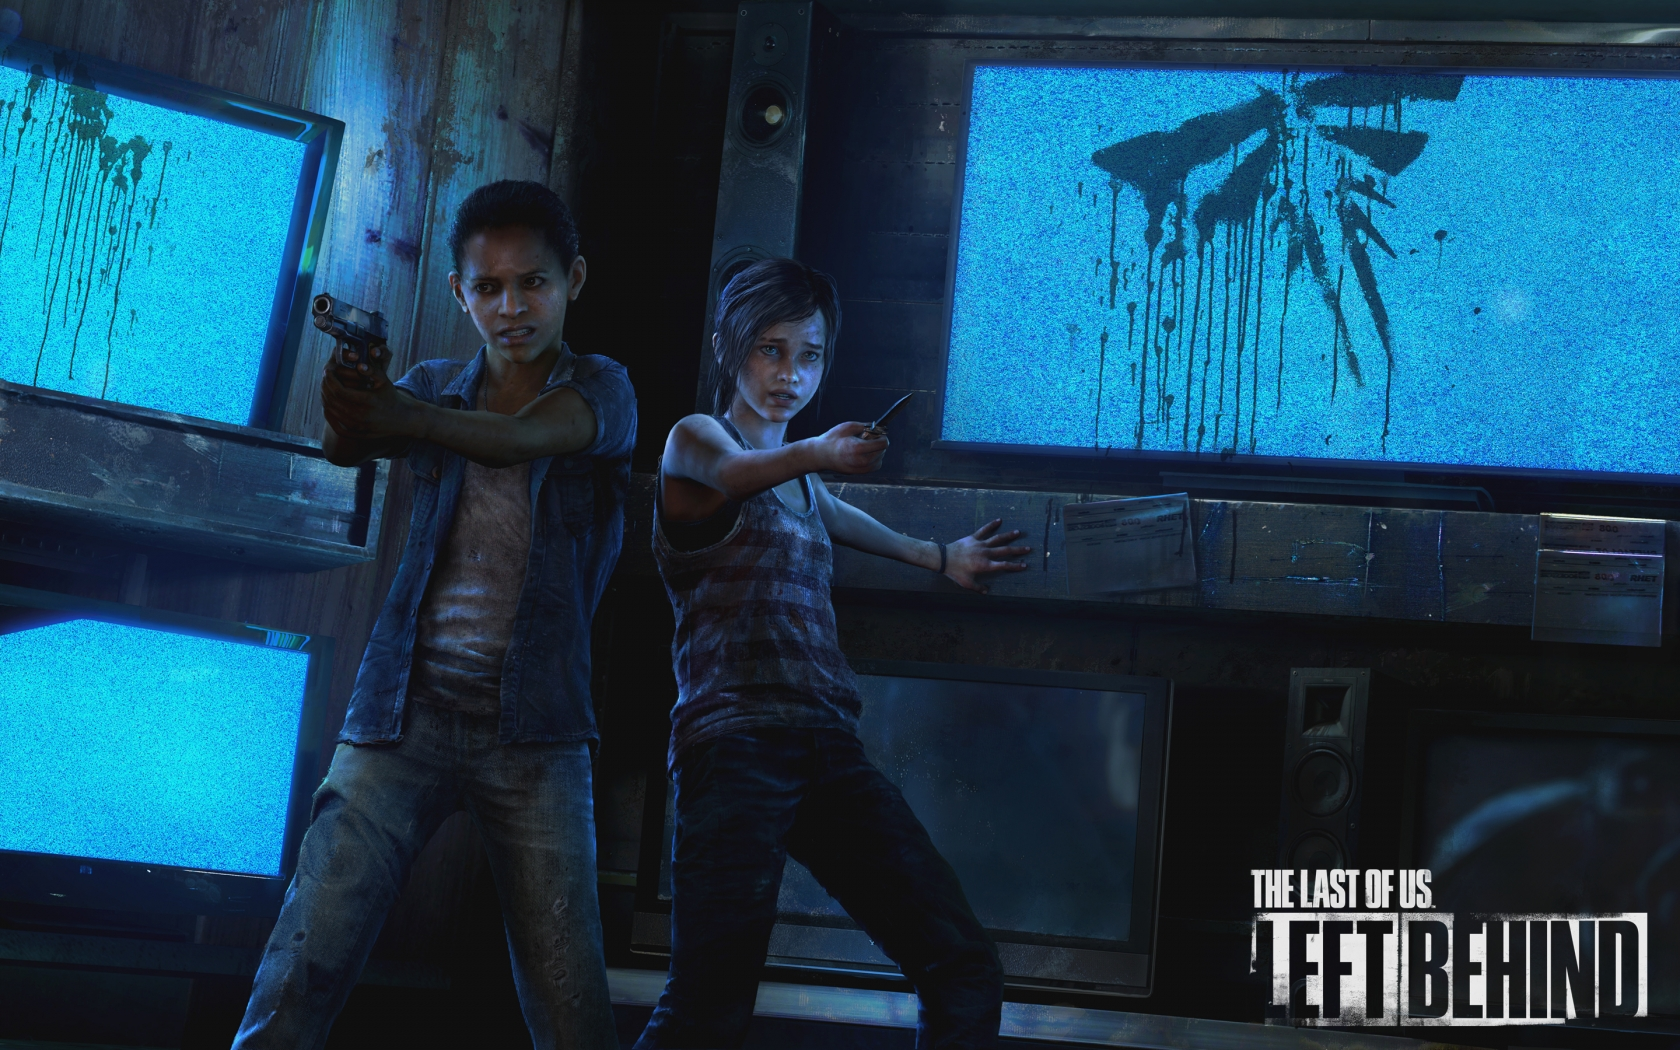 The Last Of Us Left Behind for 1680 x 1050 widescreen resolution